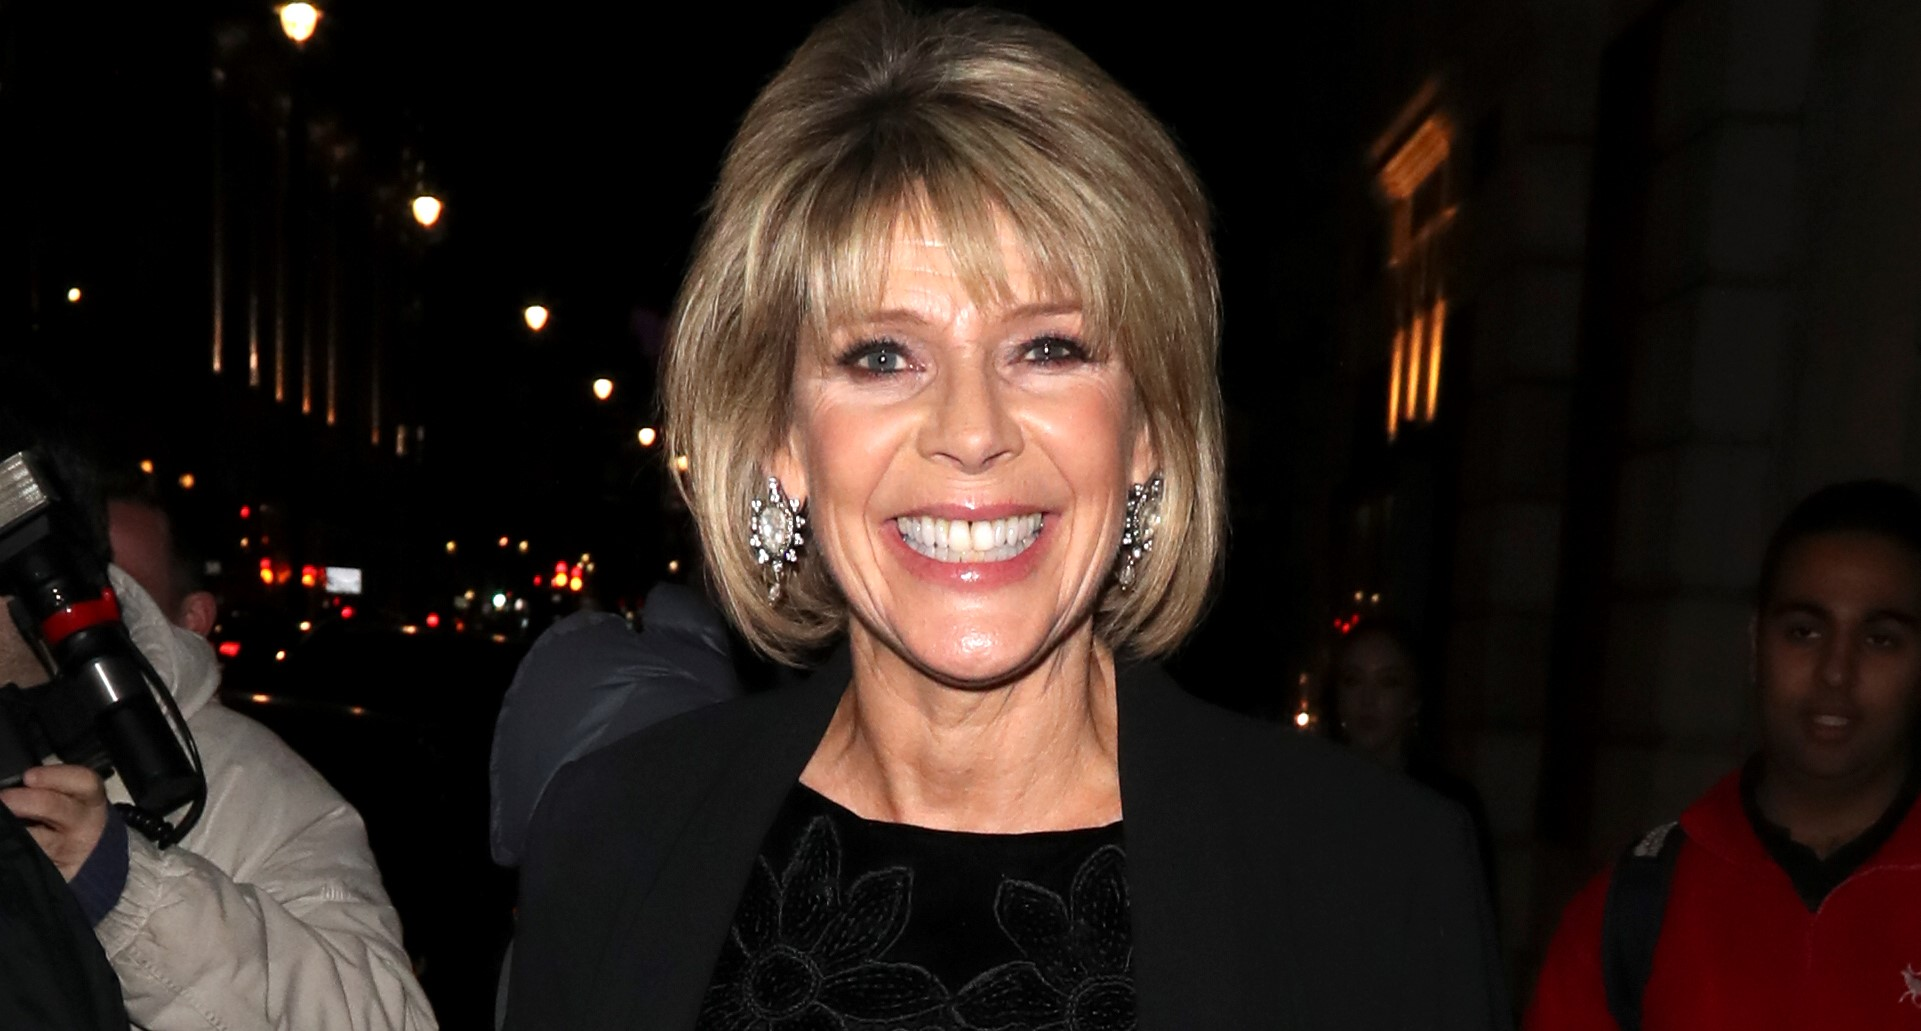 Ruth Langsford kisses mum through window on Mother's Day amid coronavirus isolation